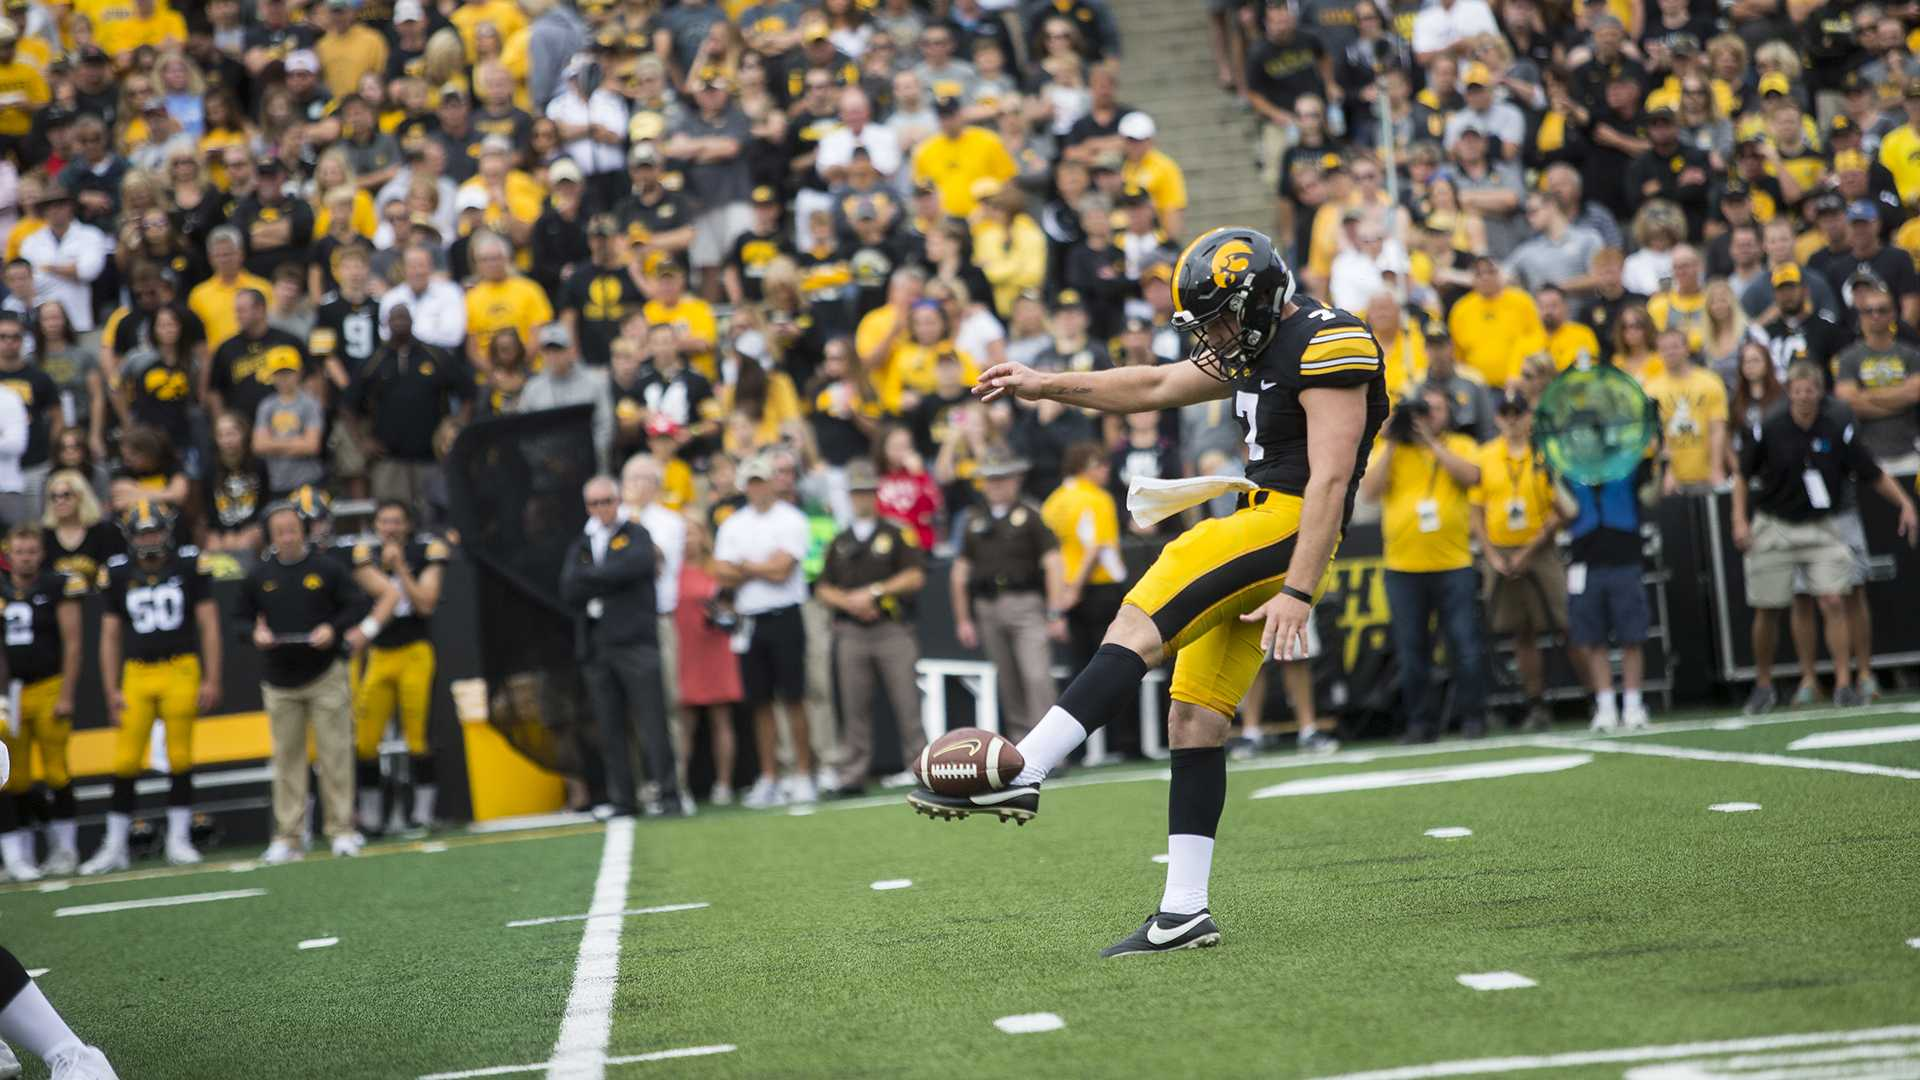 Iowa punter Colten Rastetter punts the ball away during the season opener against Wyoming on Saturday, Sep. 2, 2017. The Hawkeyes went on to defeat the Cowboys, 24-3. (Ben Smith/The Daily Iowan)